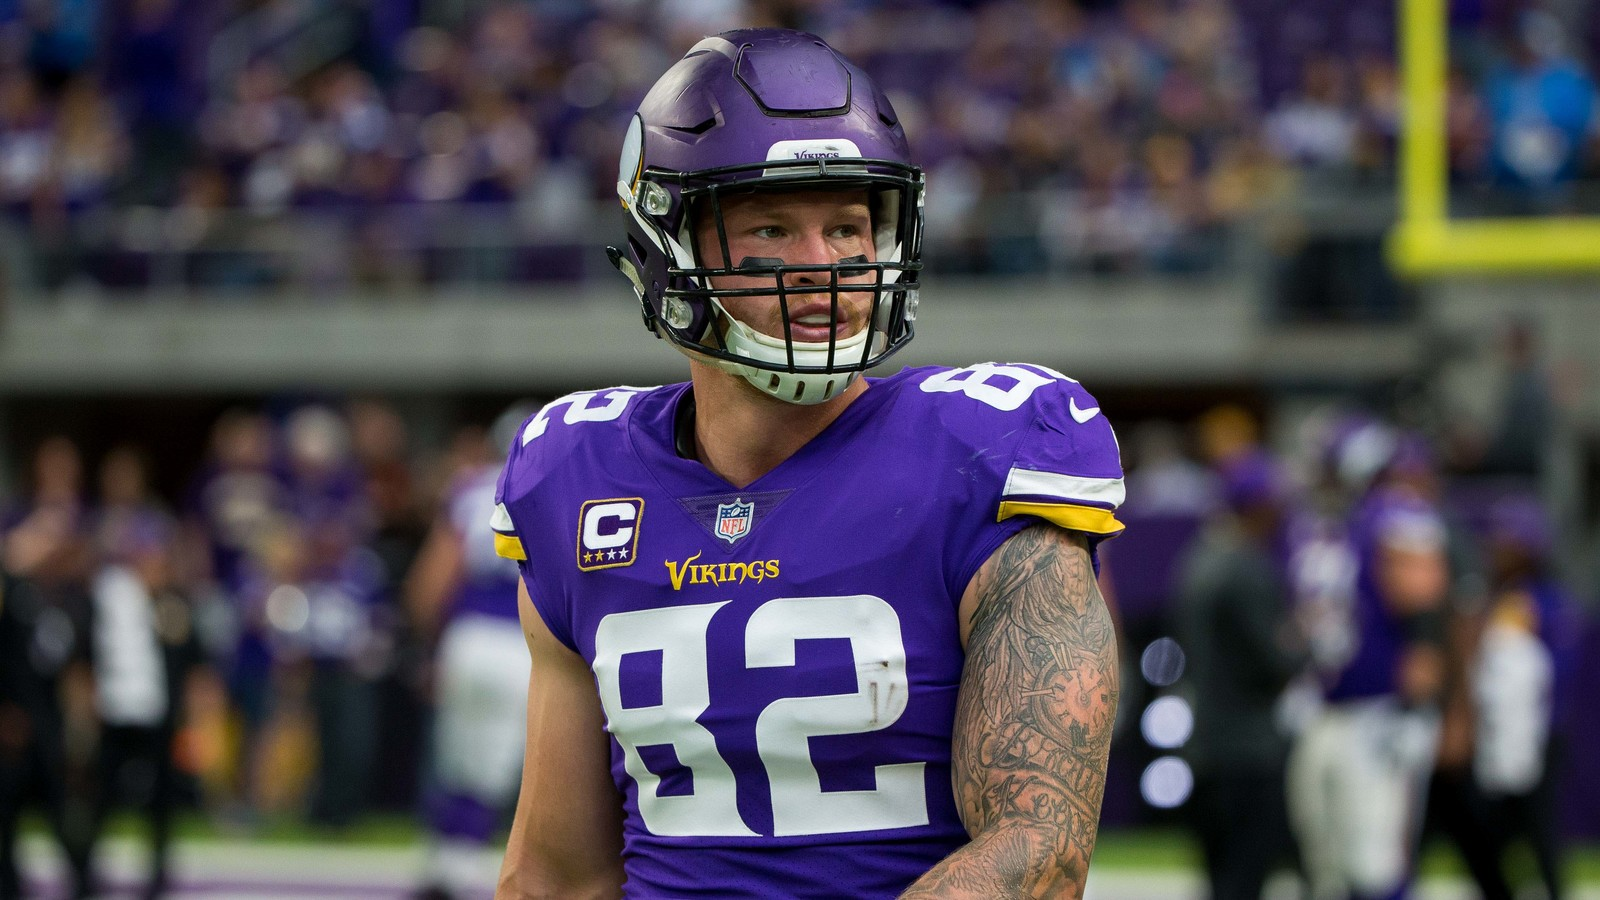 Vikings will dearly miss Rudolph if he can't play Sunday